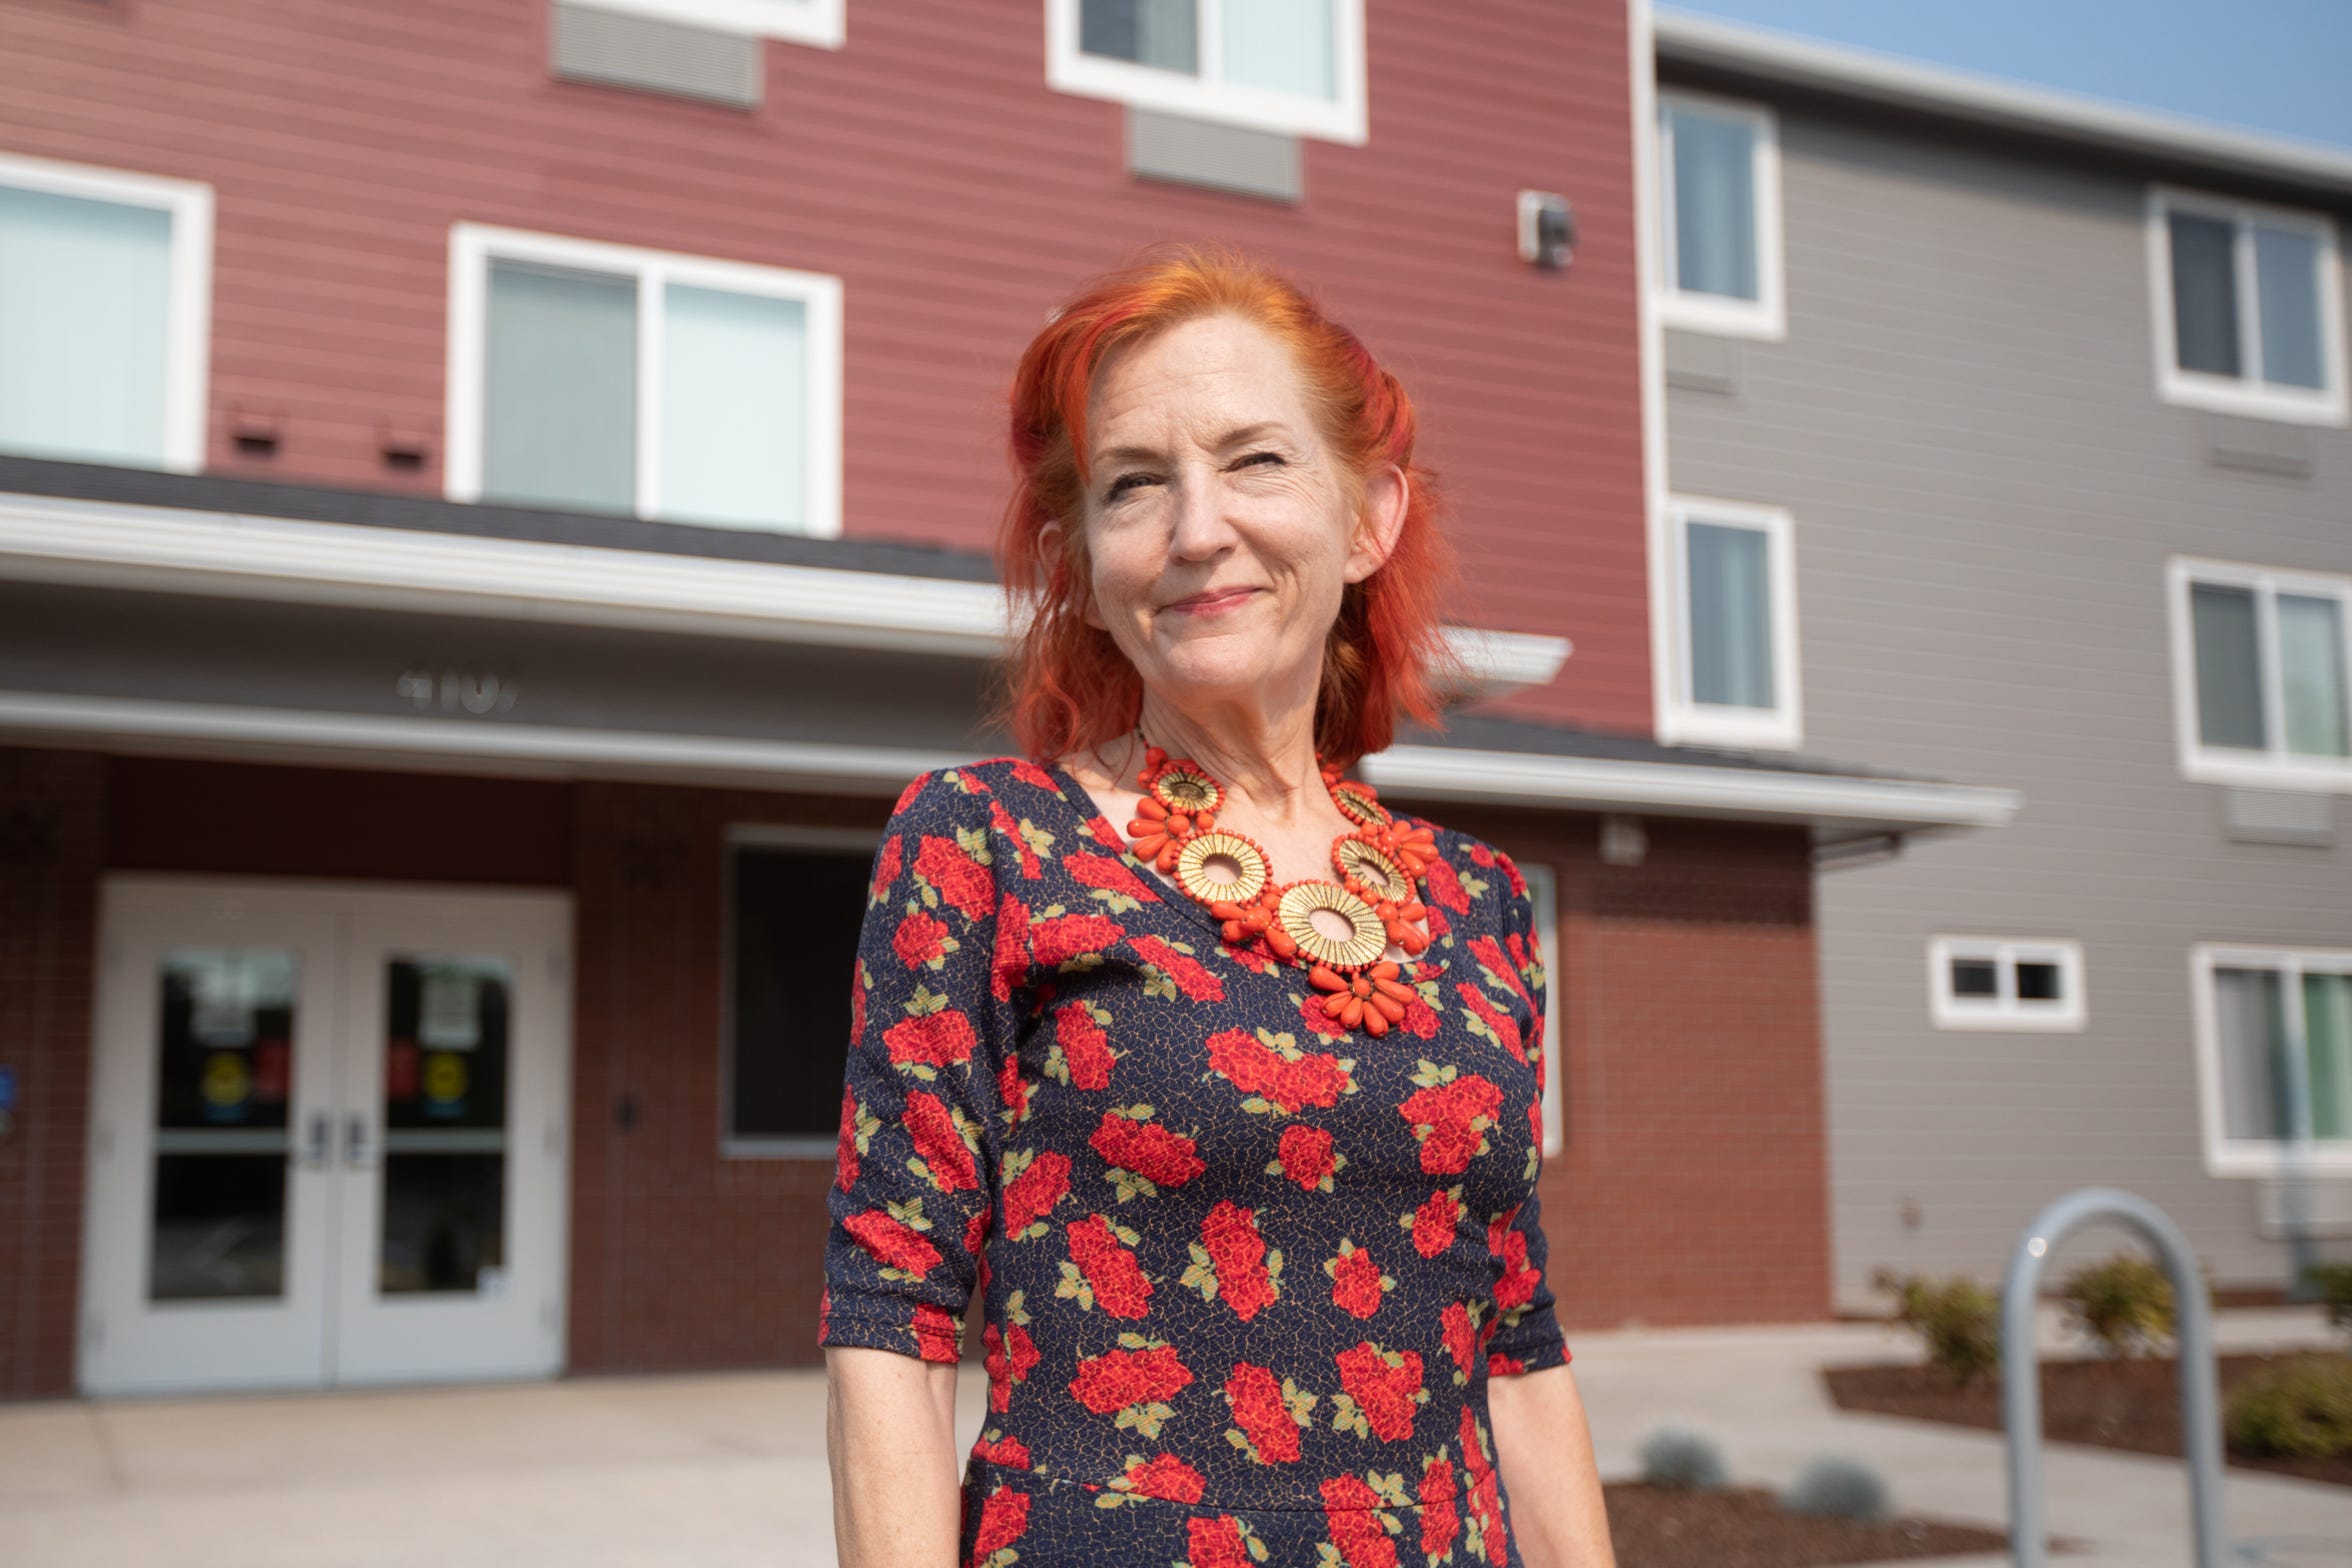 Glenda stands outside the Salem Health Authority's Redwood Crossings supportive housing development.